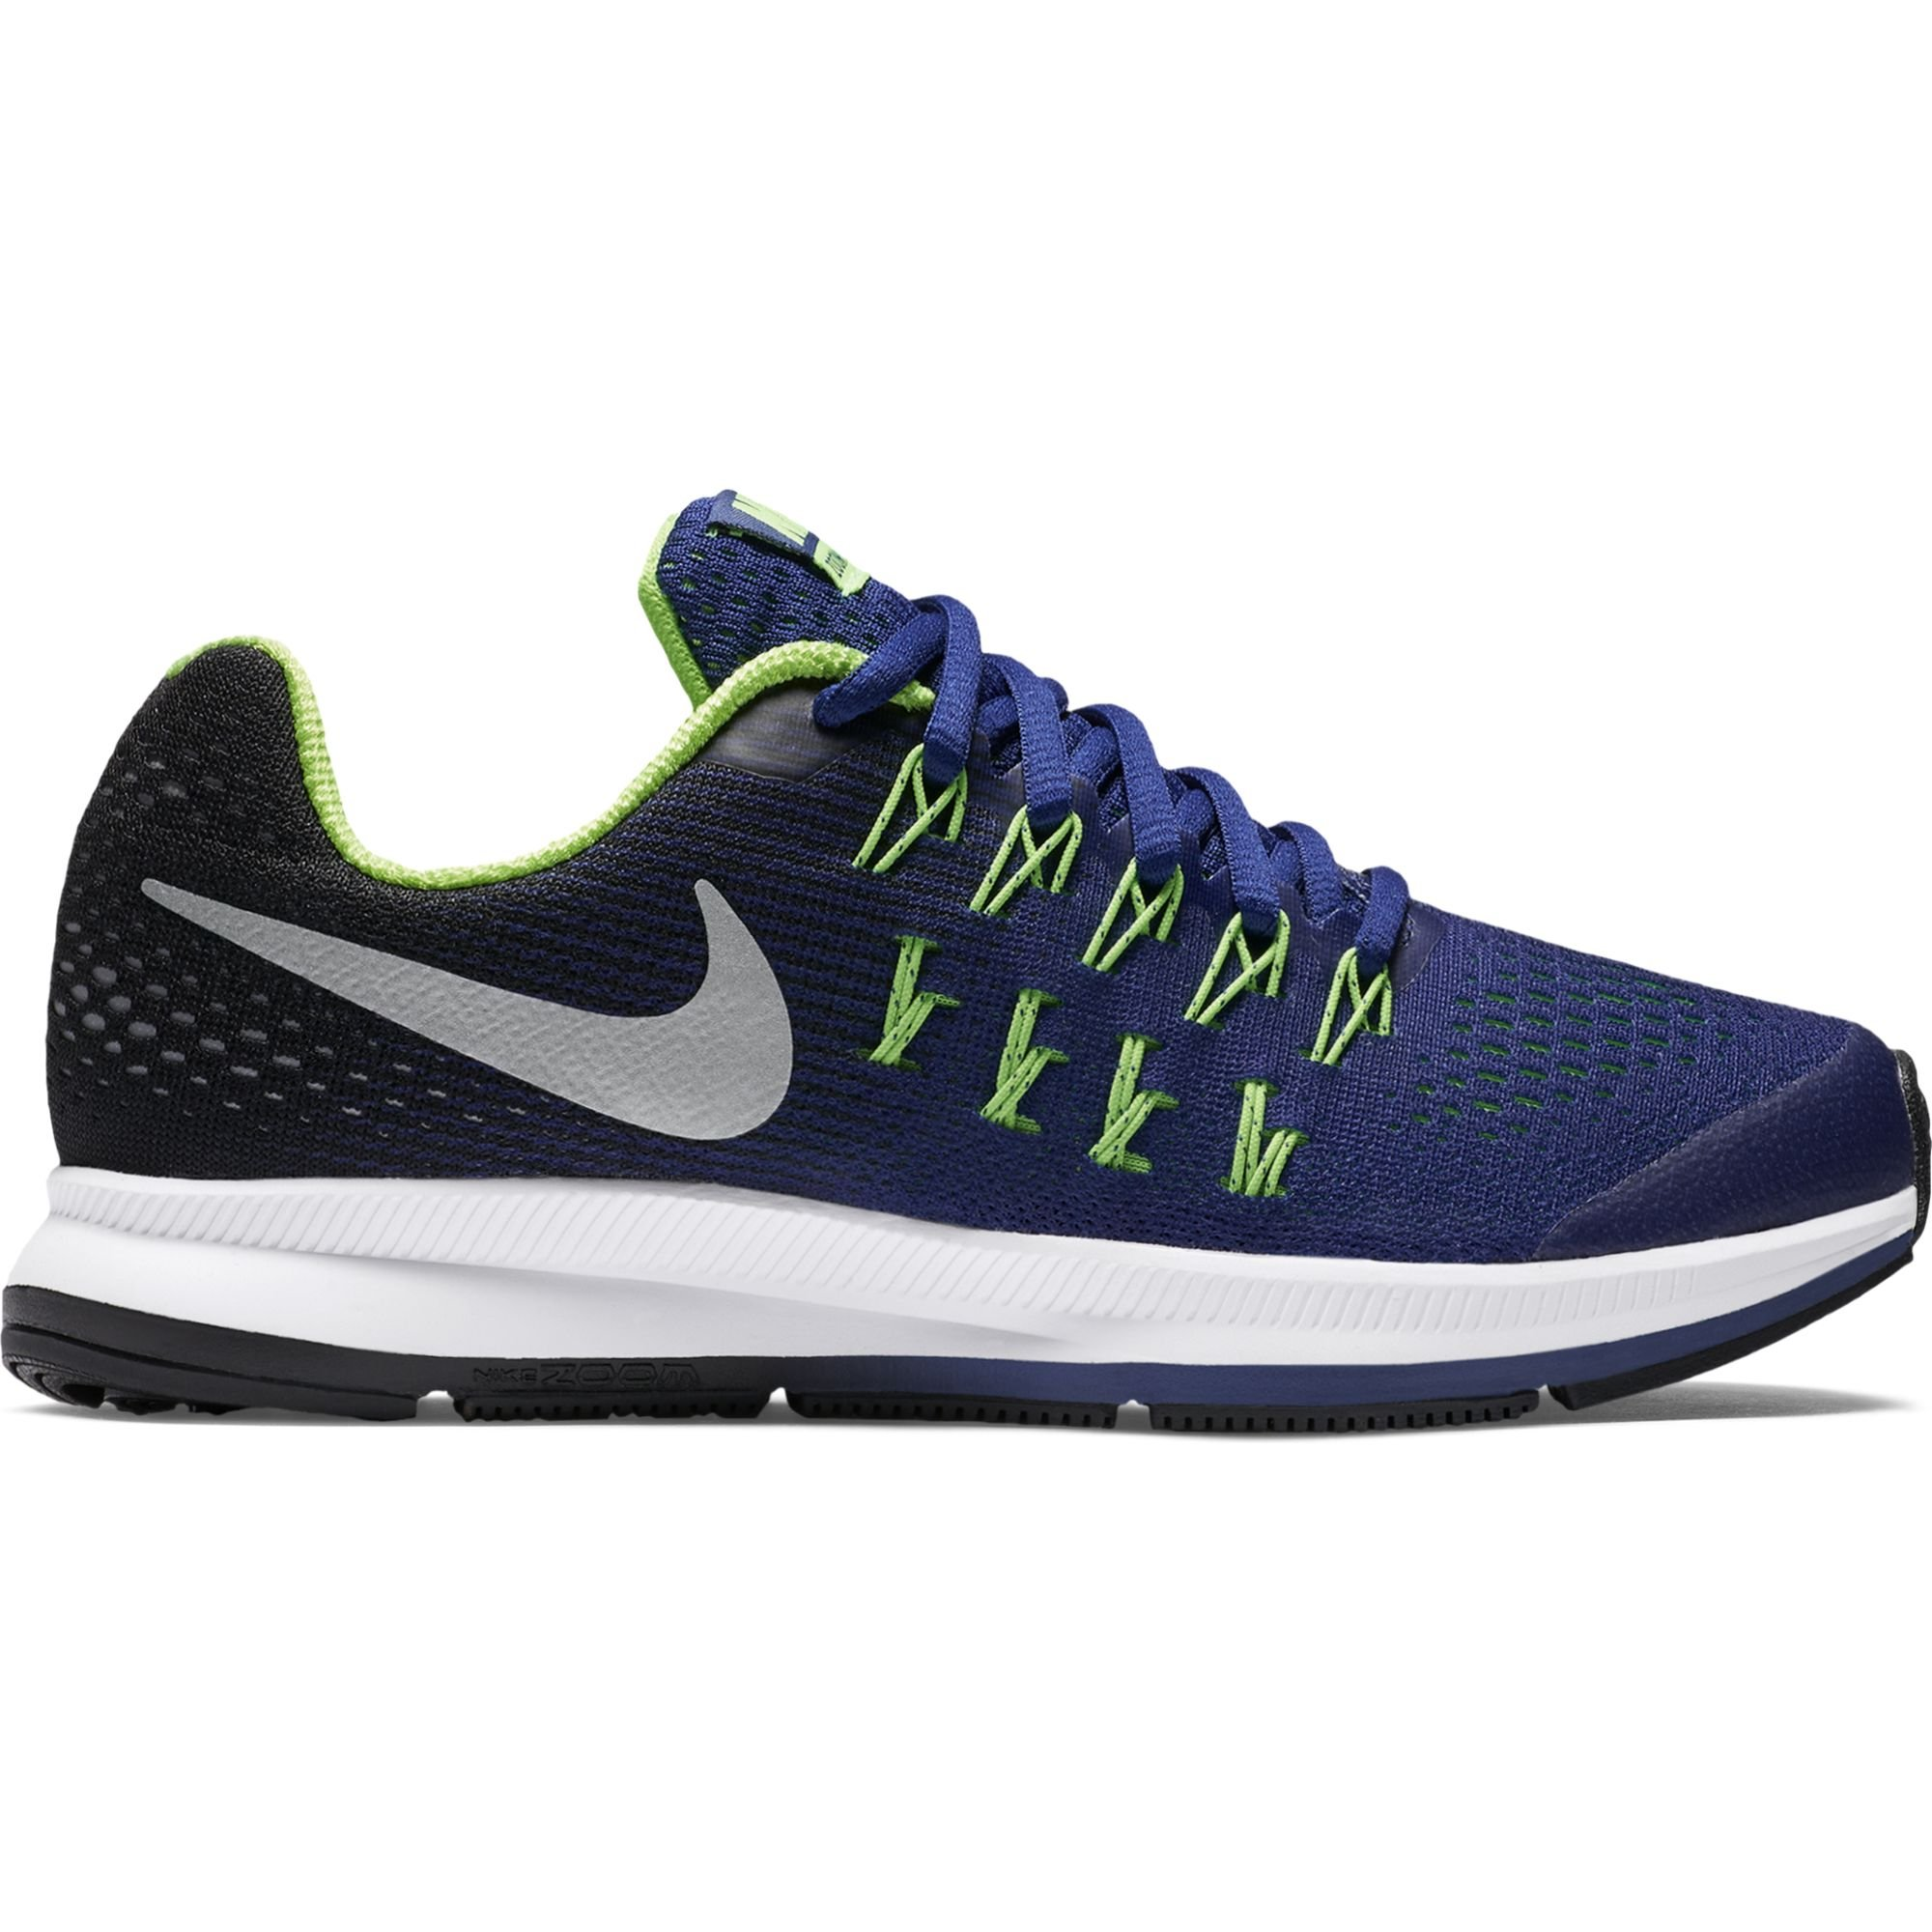 best loved d0507 651e4 Galleon - NIKE Boy s Zoom Pegasus 33 (GS) Running Shoe Deep Royal  Blue Black Green Silver Size 7 M US